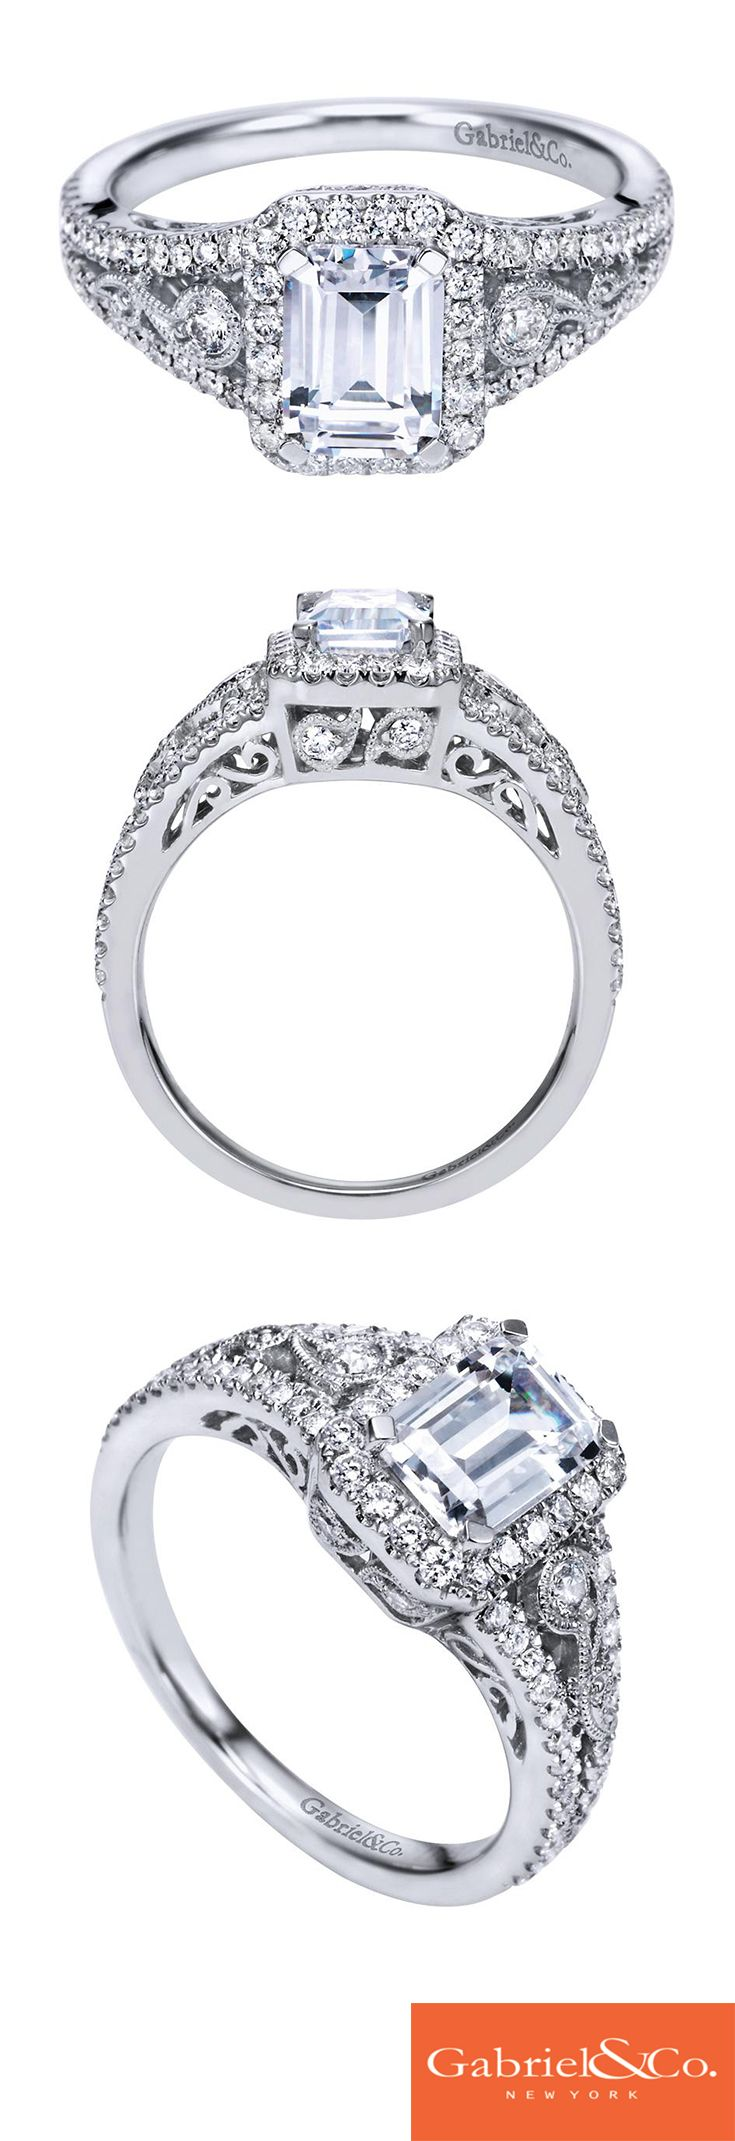 25 Cute Perfect Engagement Ring Ideas On Pinterest